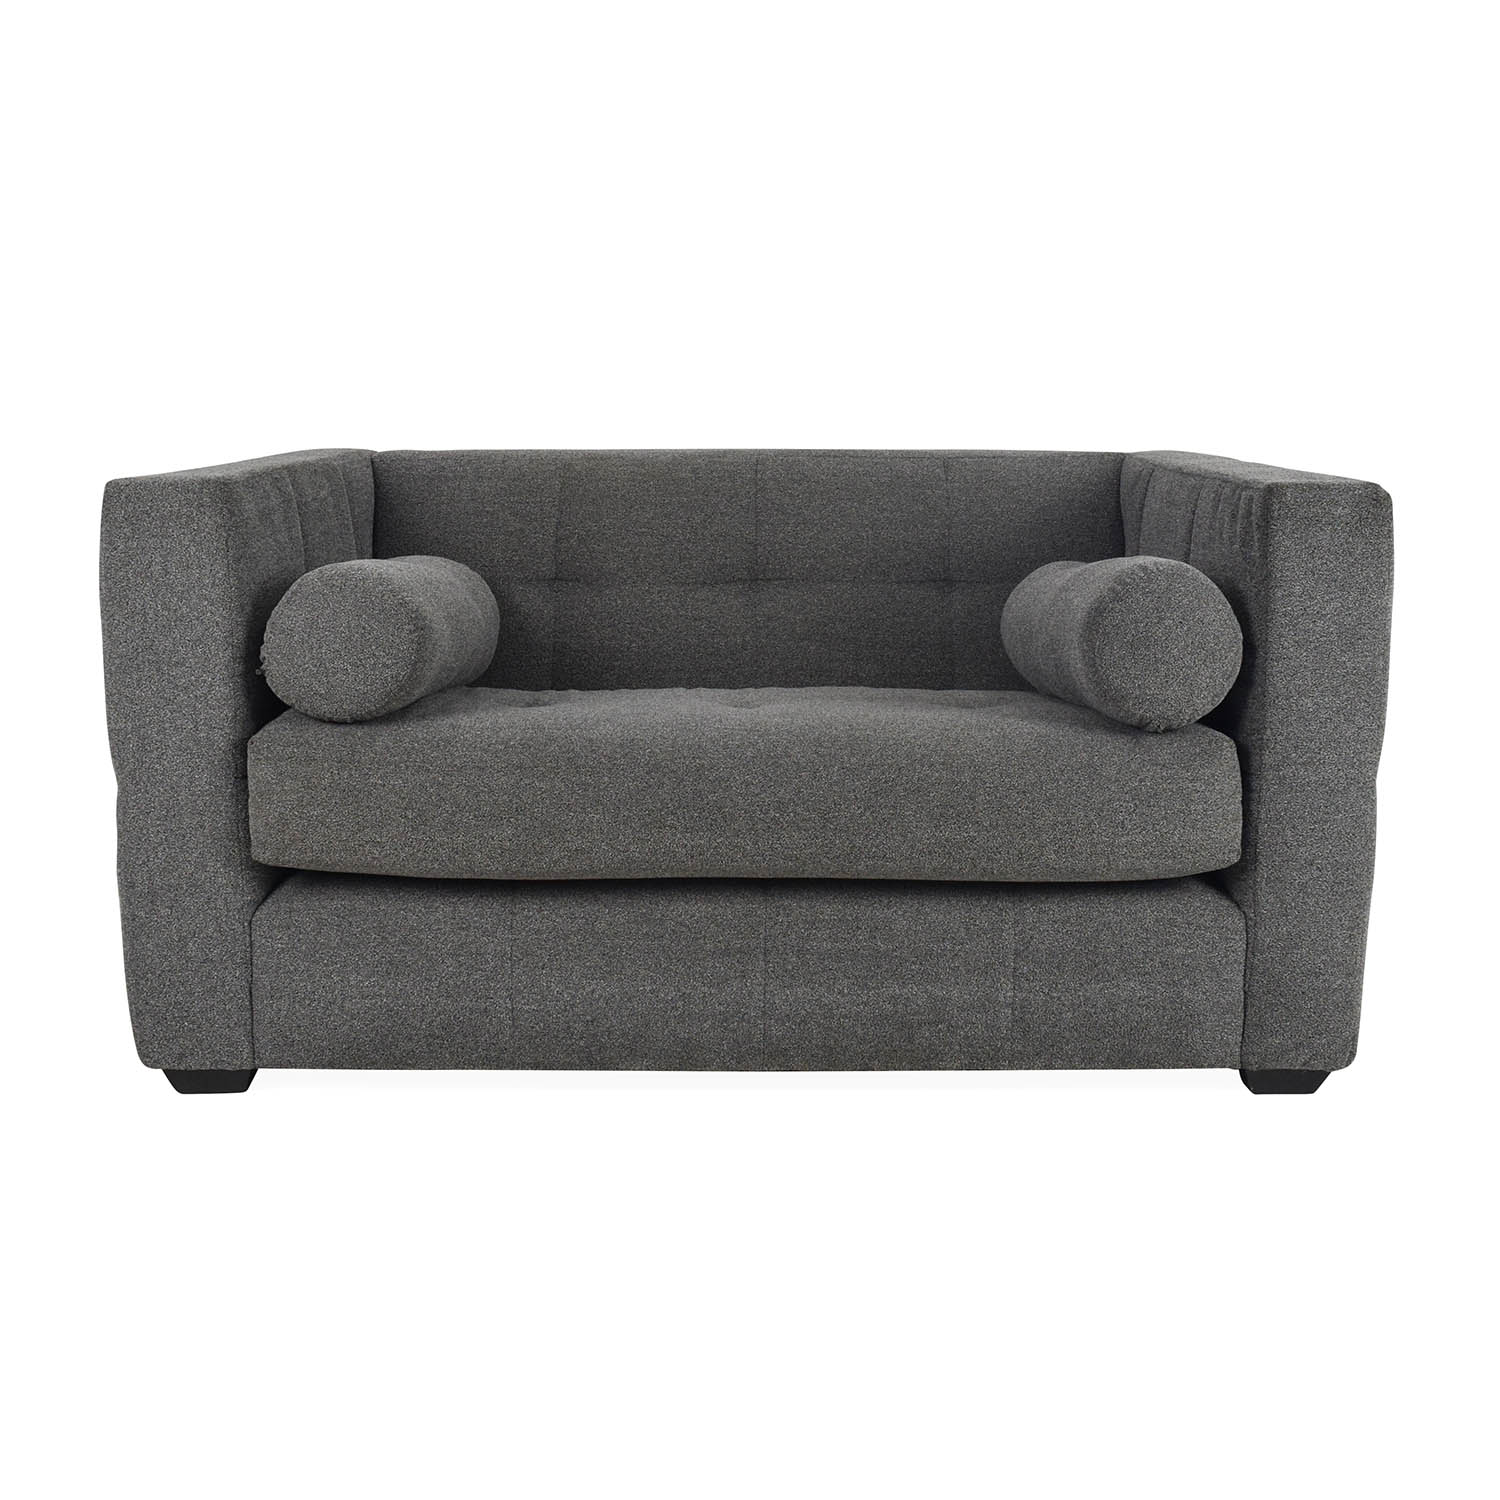 63% OFF   Decor NYC Decor NYC Boucle Loveseat / Sofas